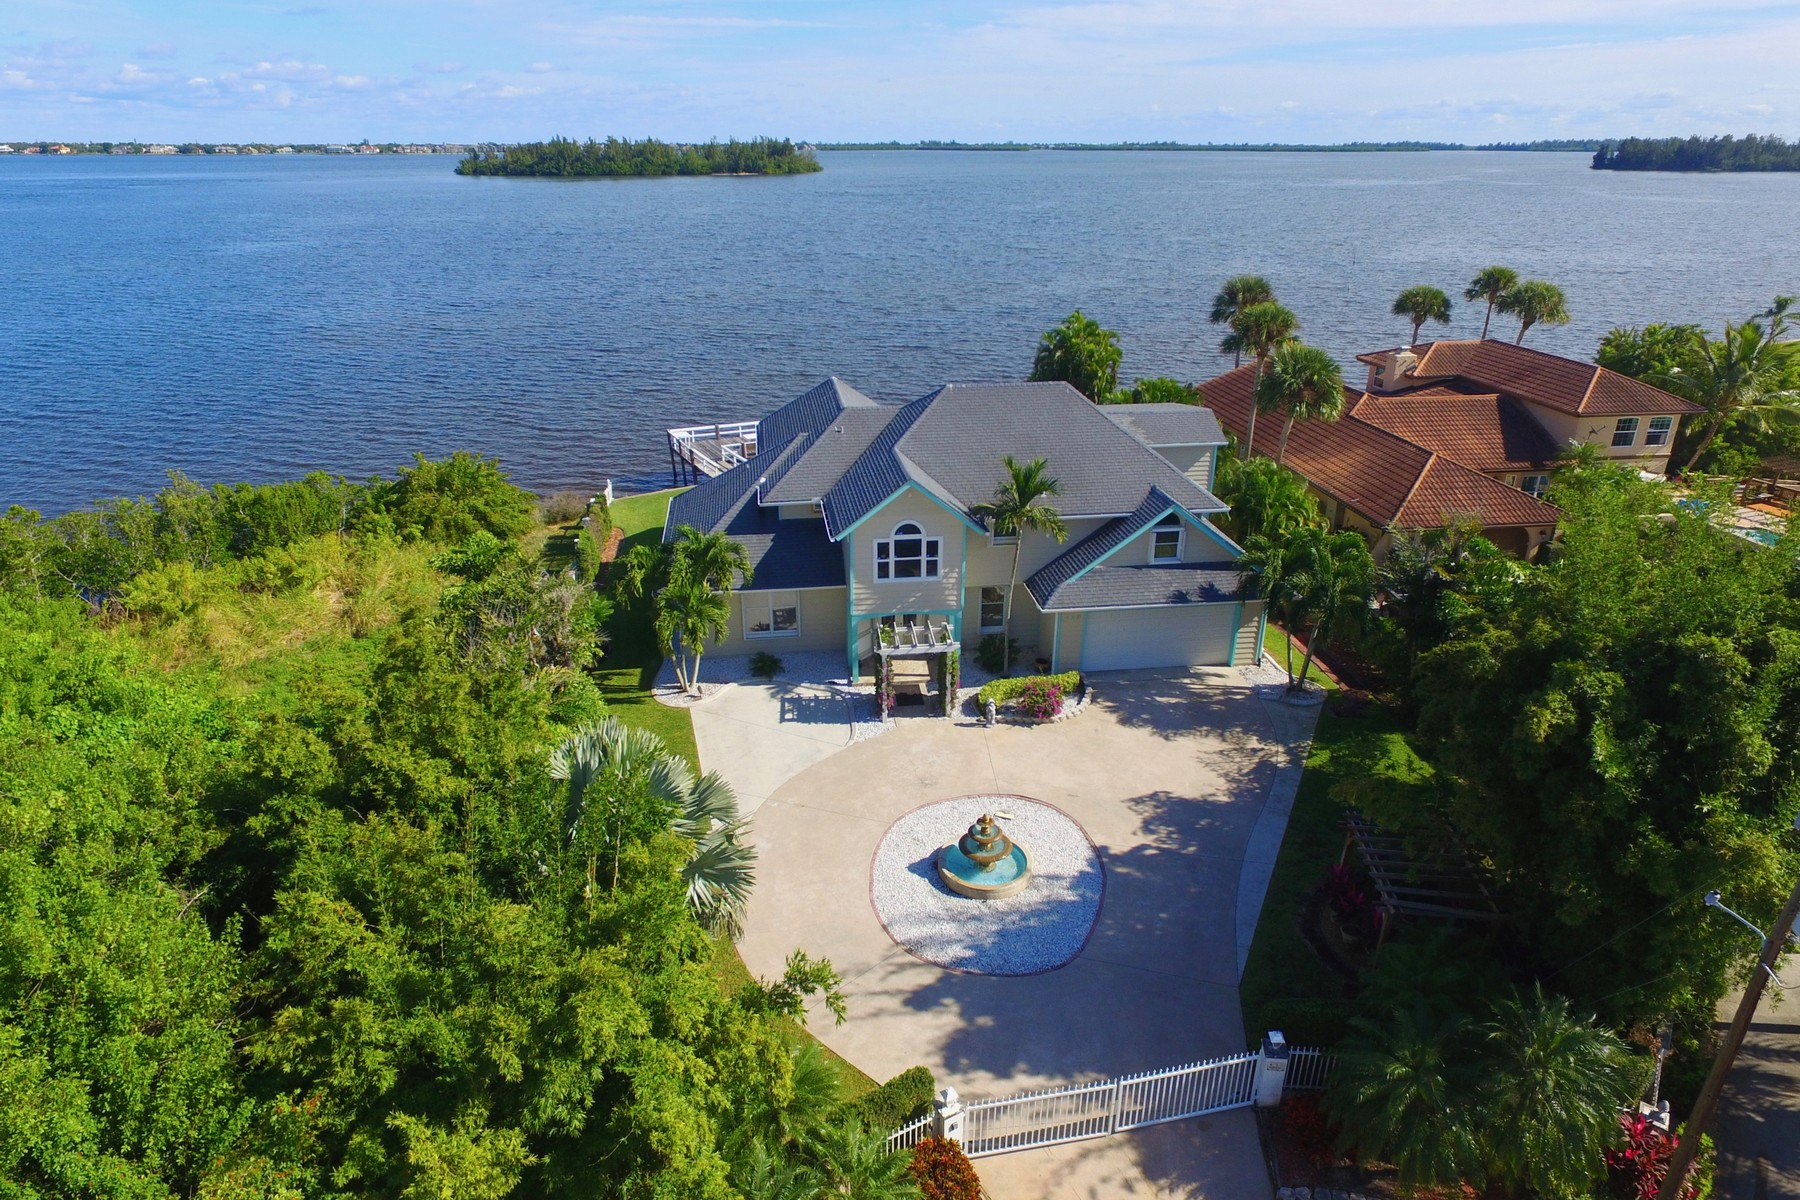 Single Family Home for Sale at Sunrise Point! Direct Riverfront Pool Home With Dock 499 12th Street SE Vero Beach, Florida 32962 United States